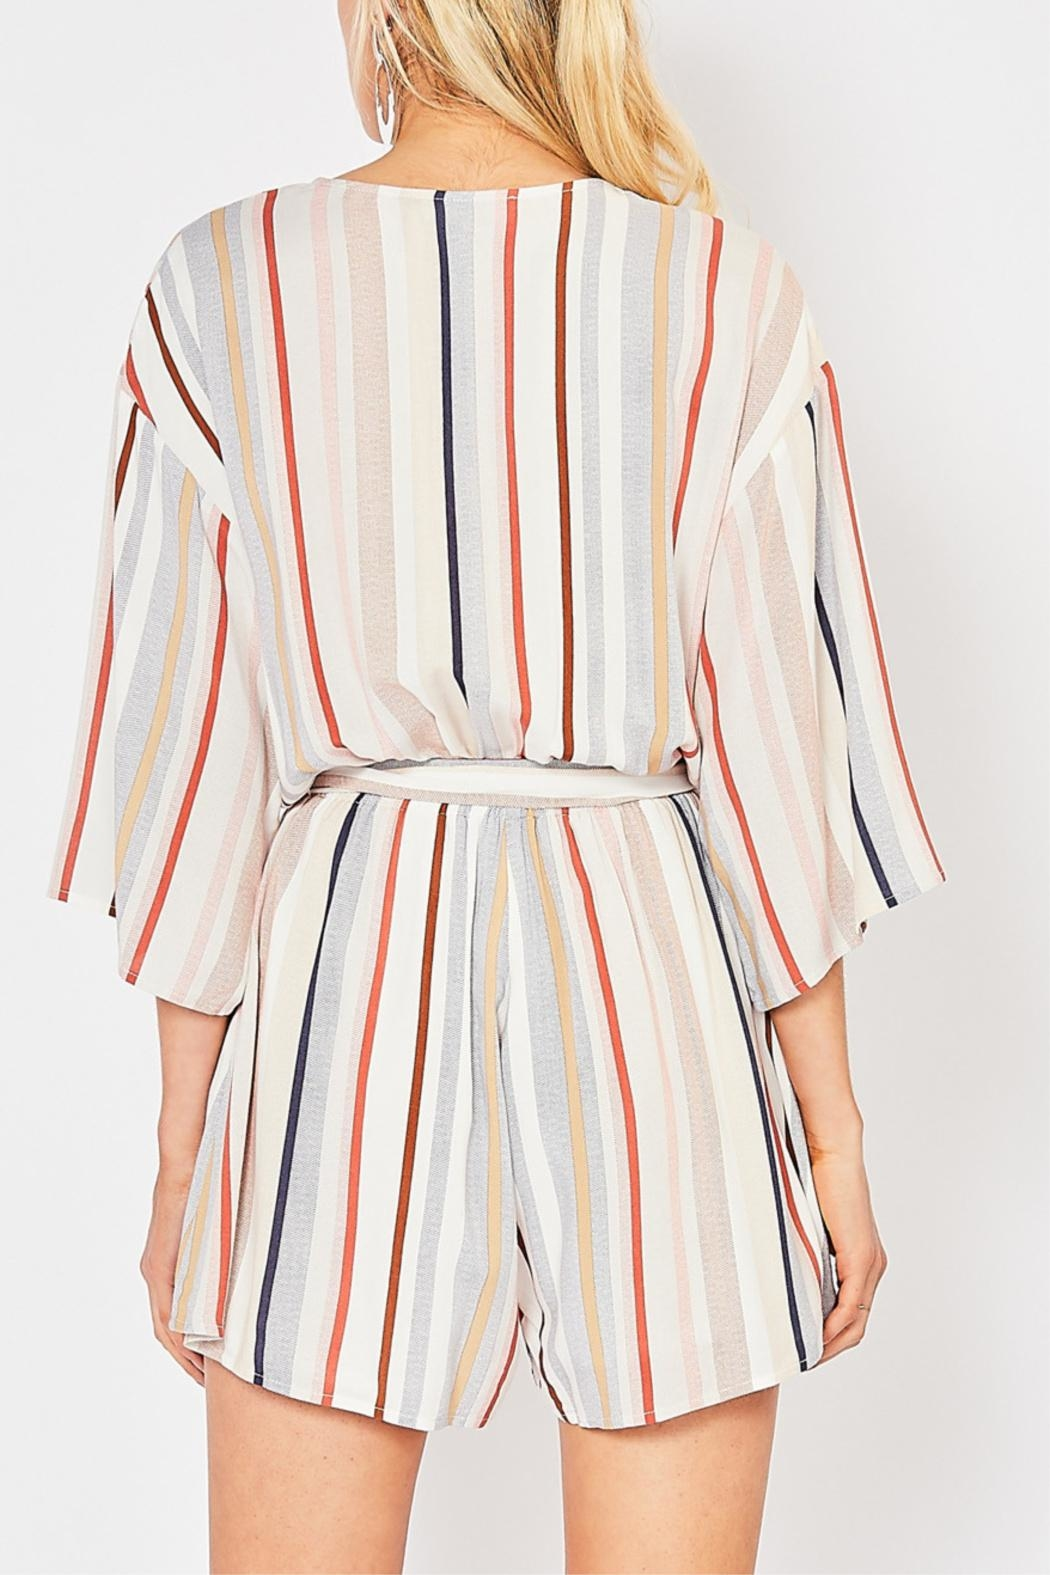 Entro Striped V-Neck Romper - Side Cropped Image